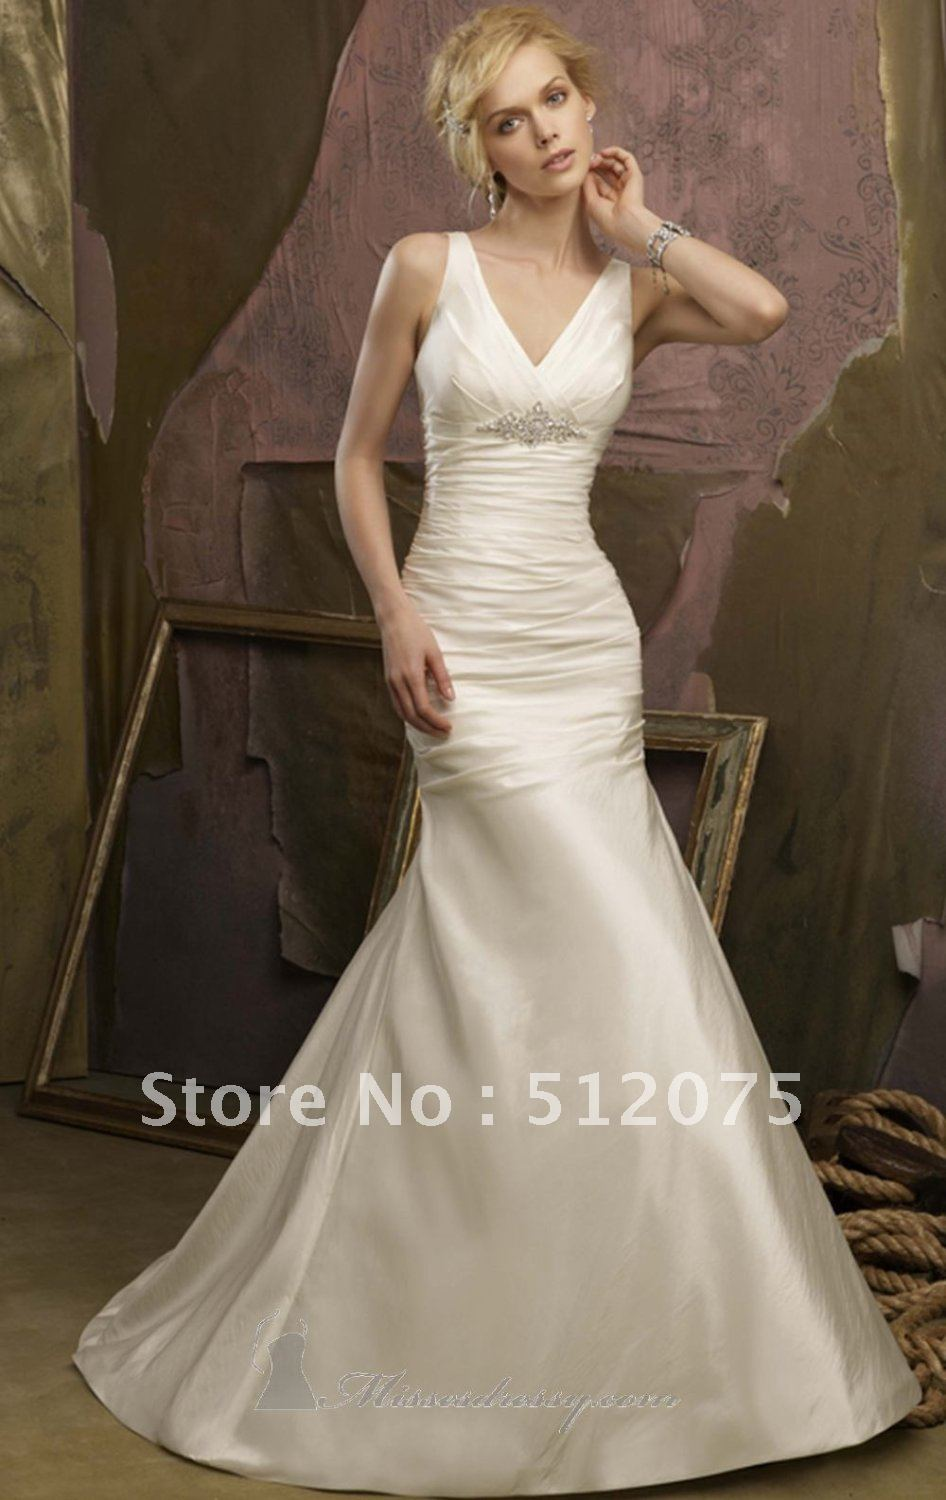 Wedding dresses for mother of the groom nicole miller for Mother of the groom wedding dress